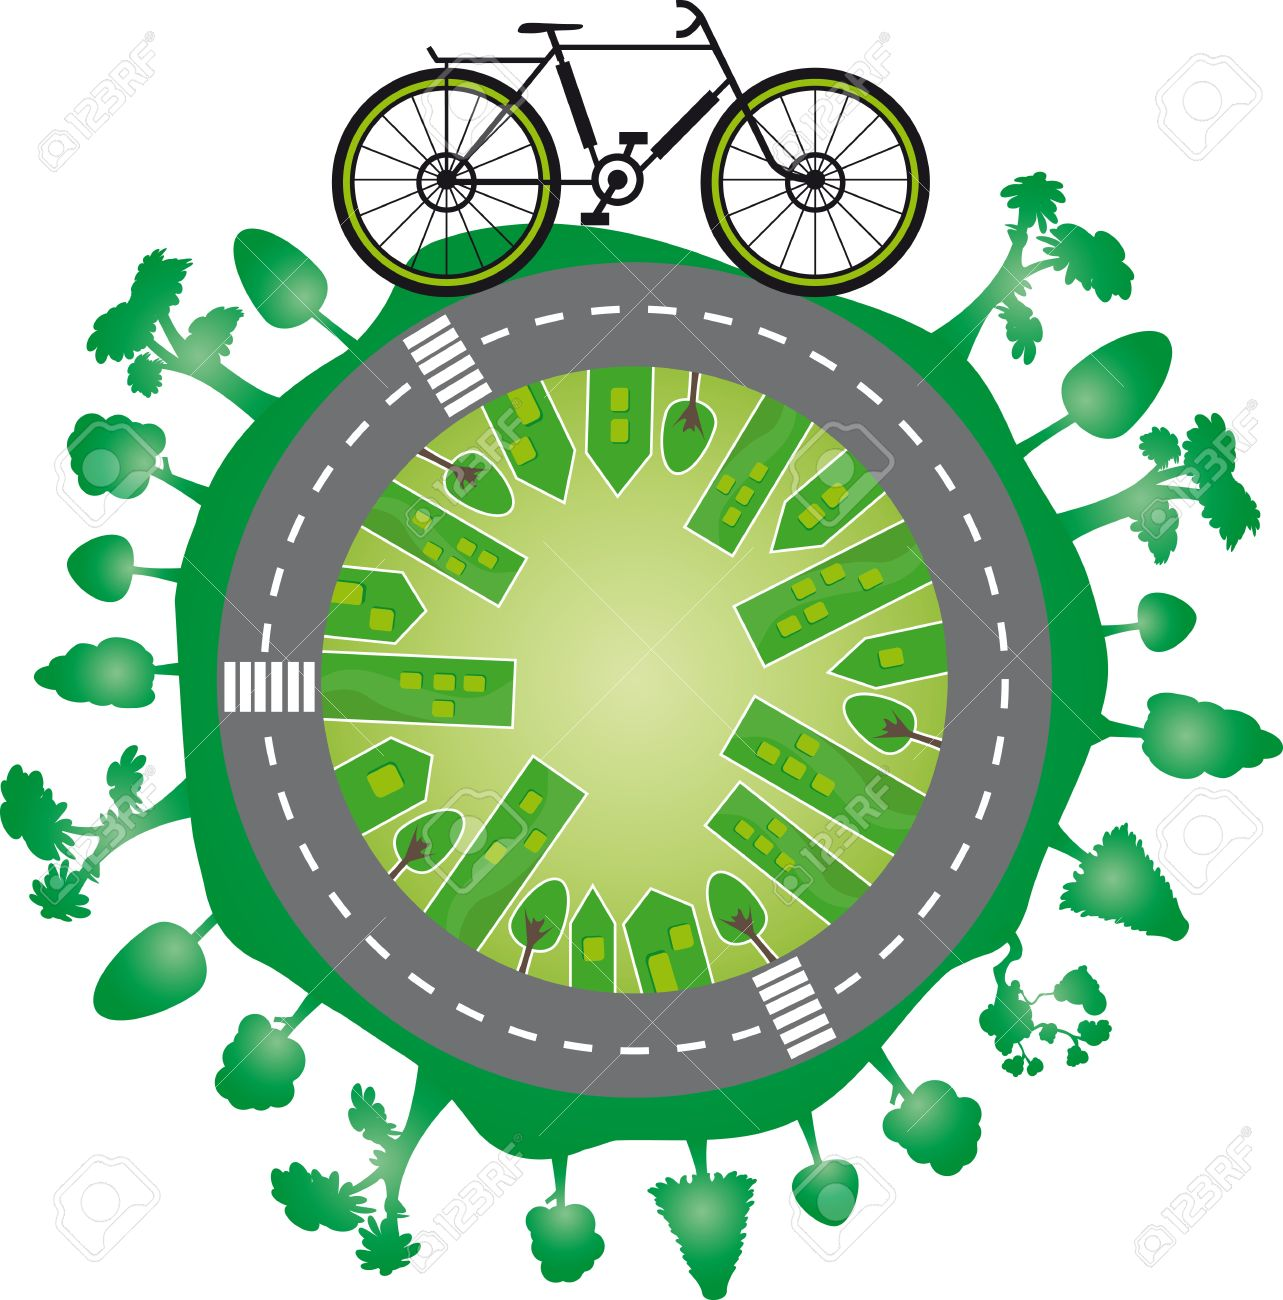 Green World And Bike World City With Green Trees And A Bycicle.